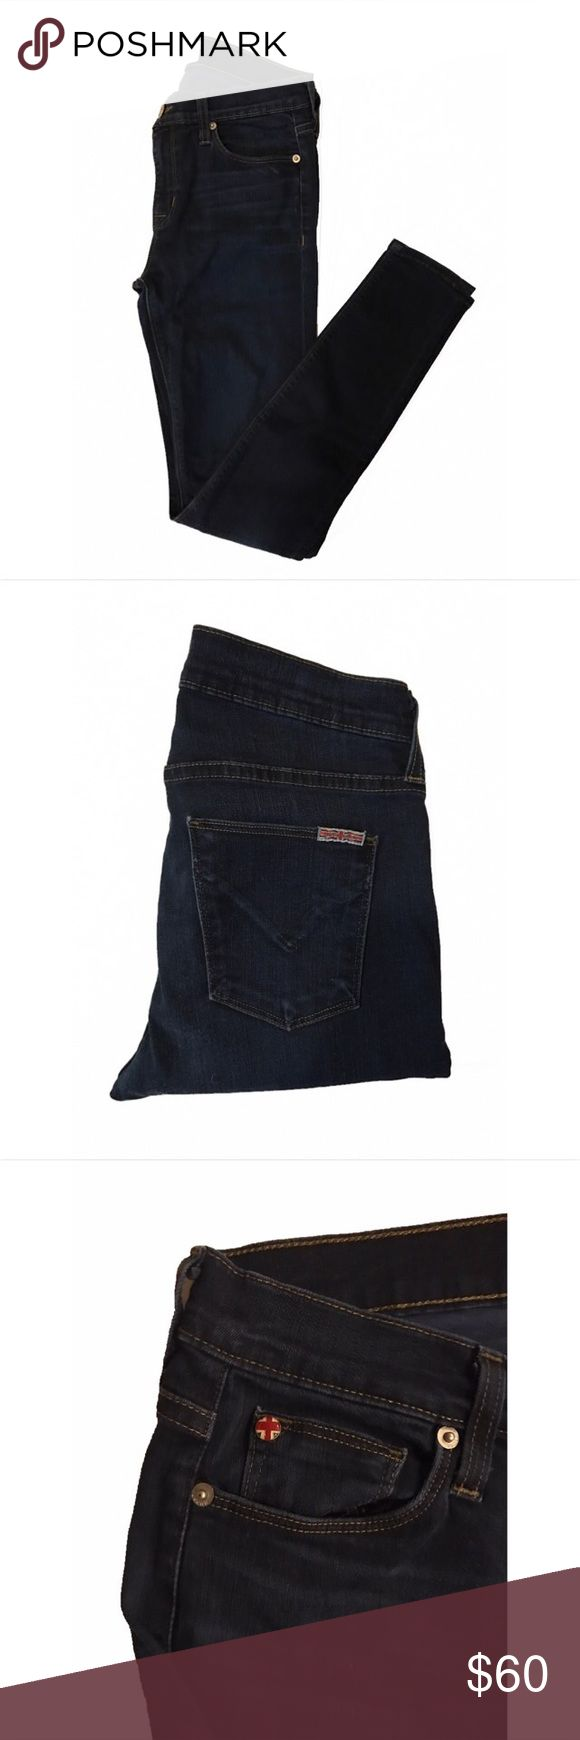 Hudson Women's Nico Midrise Super Skinny Jeans A midrise that hits in just the right place and stretch for all day comfort! Hudson Jeans Jeans Skinny